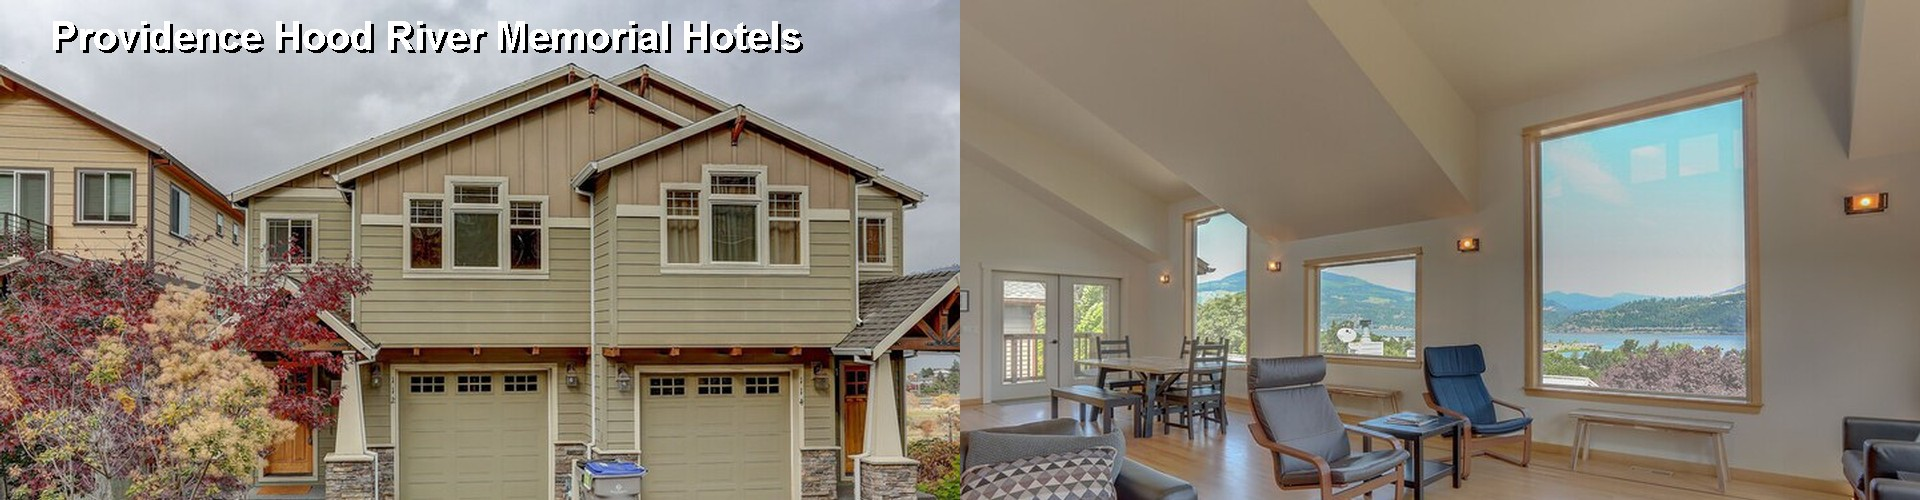 5 Best Hotels near Providence Hood River Memorial